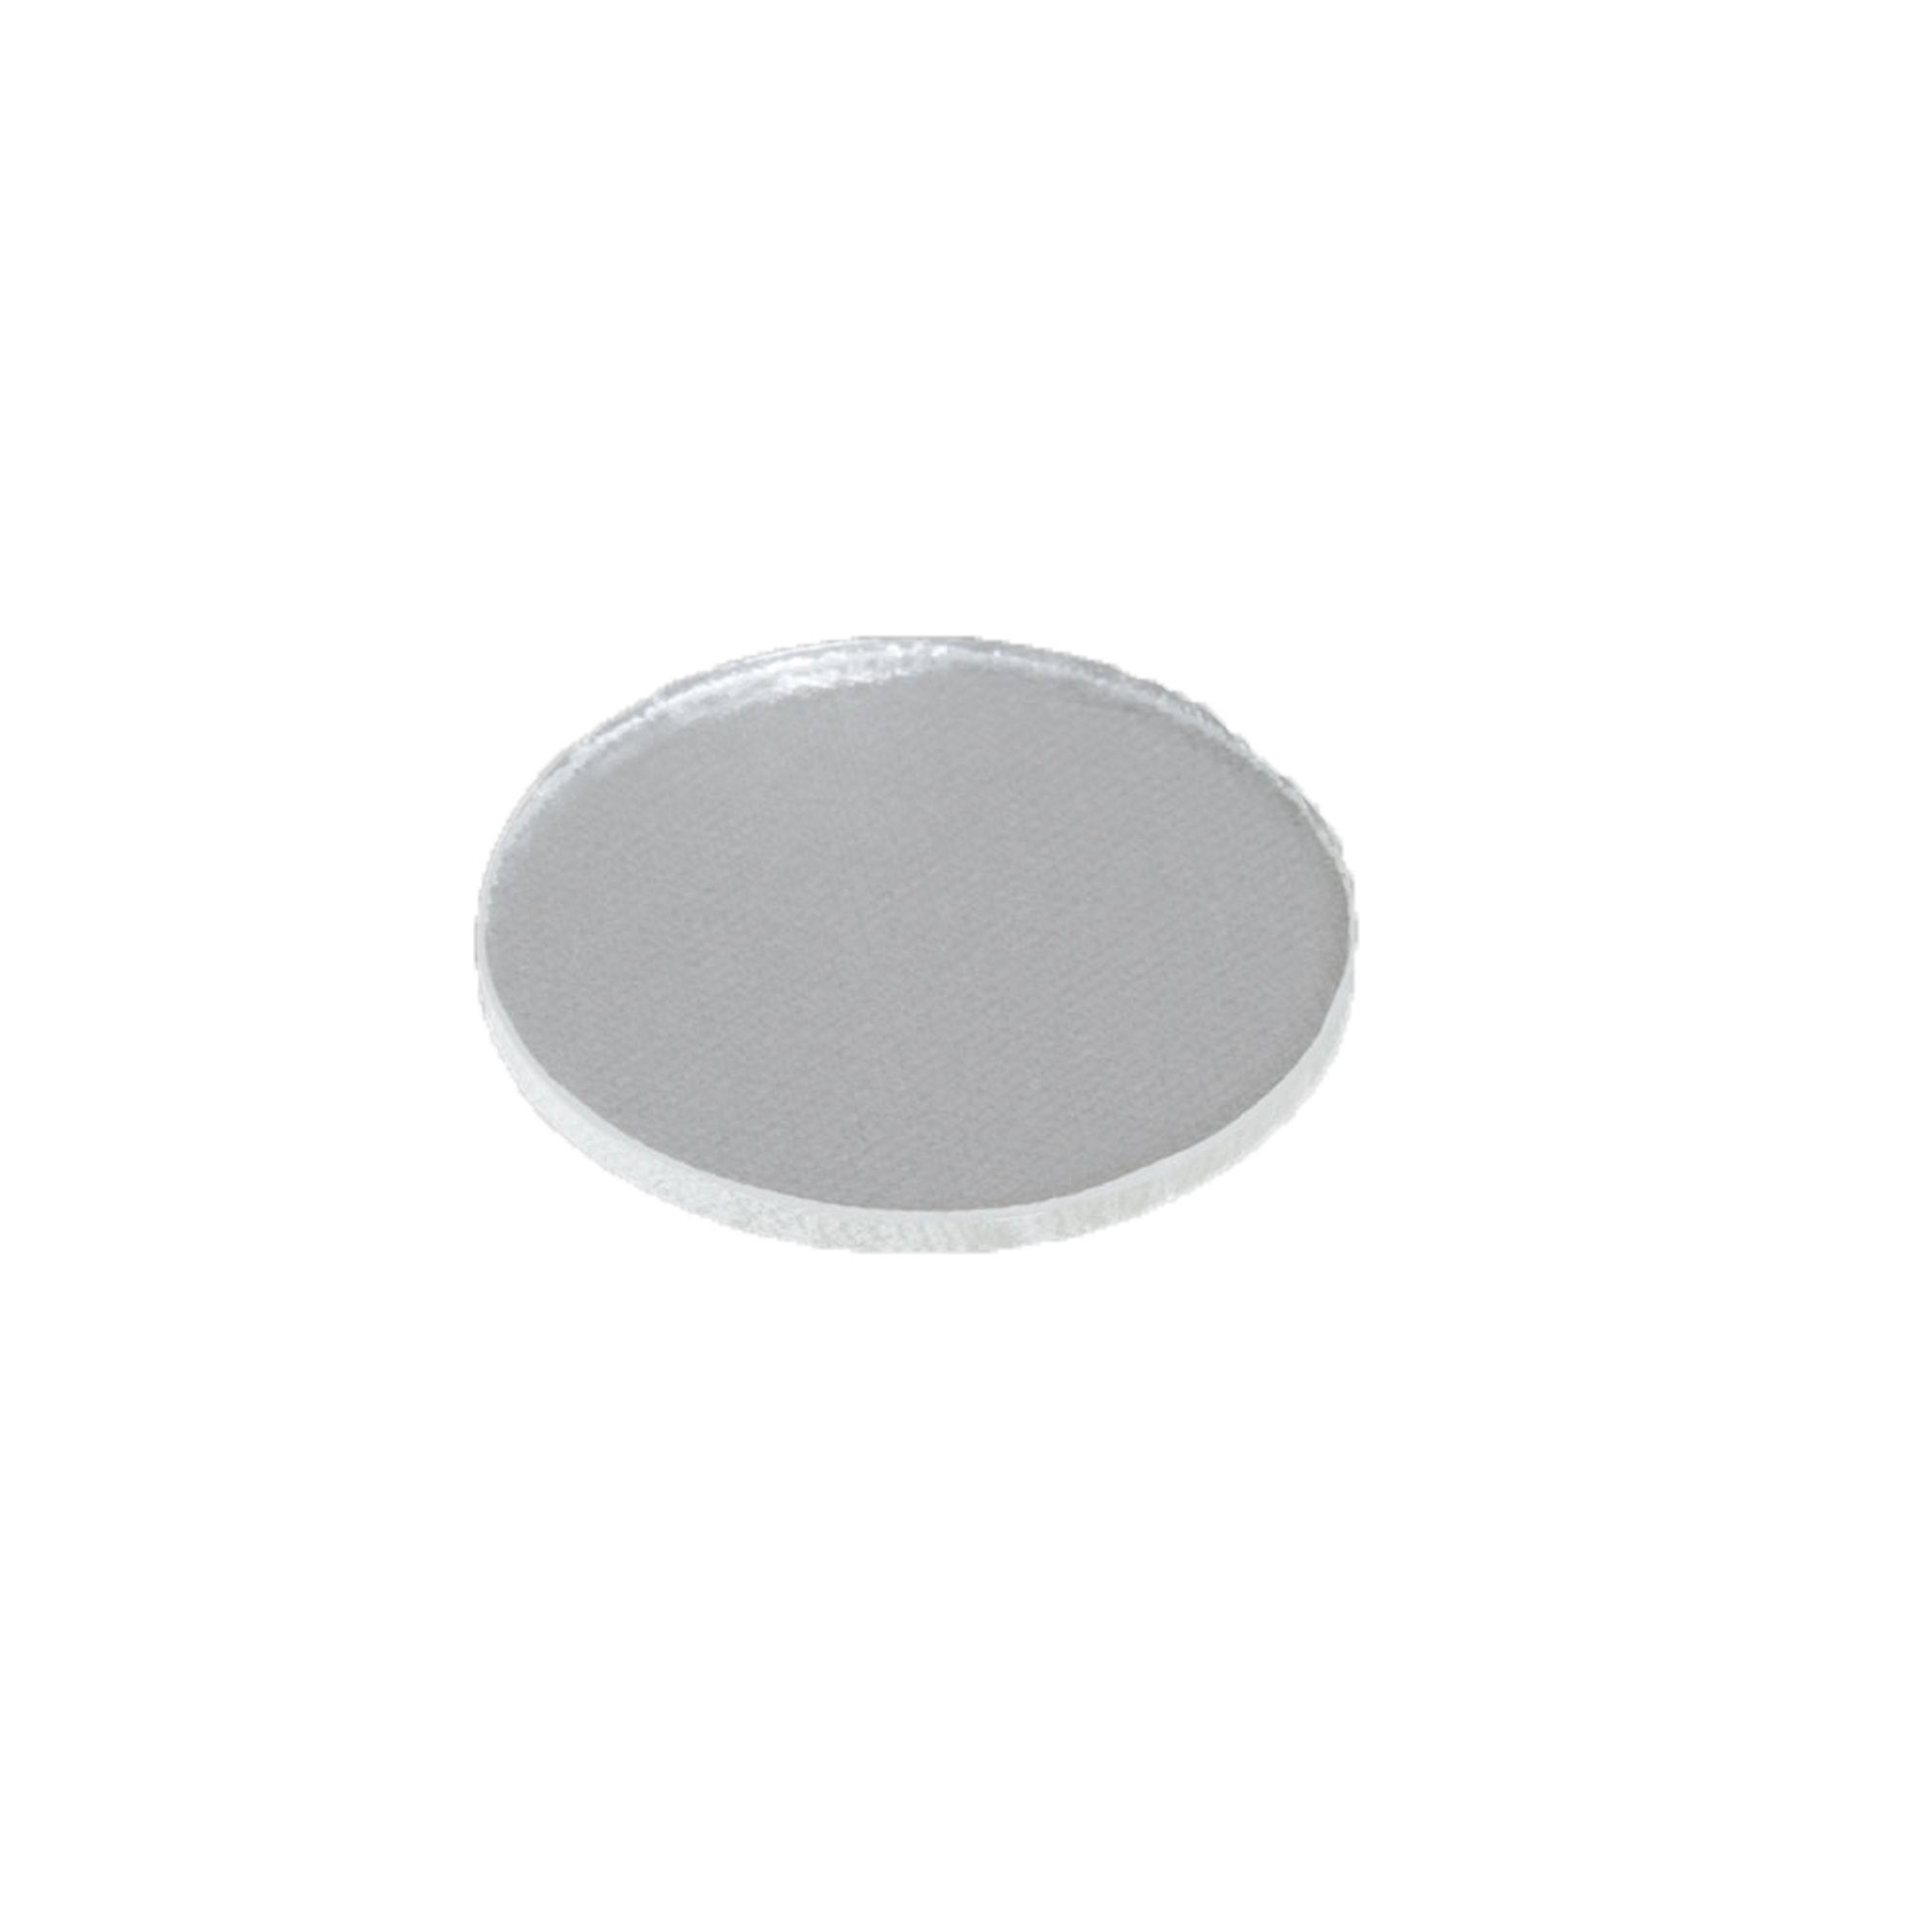 Vorsa 20 High Transmission Softening Lens Ø17.5mm